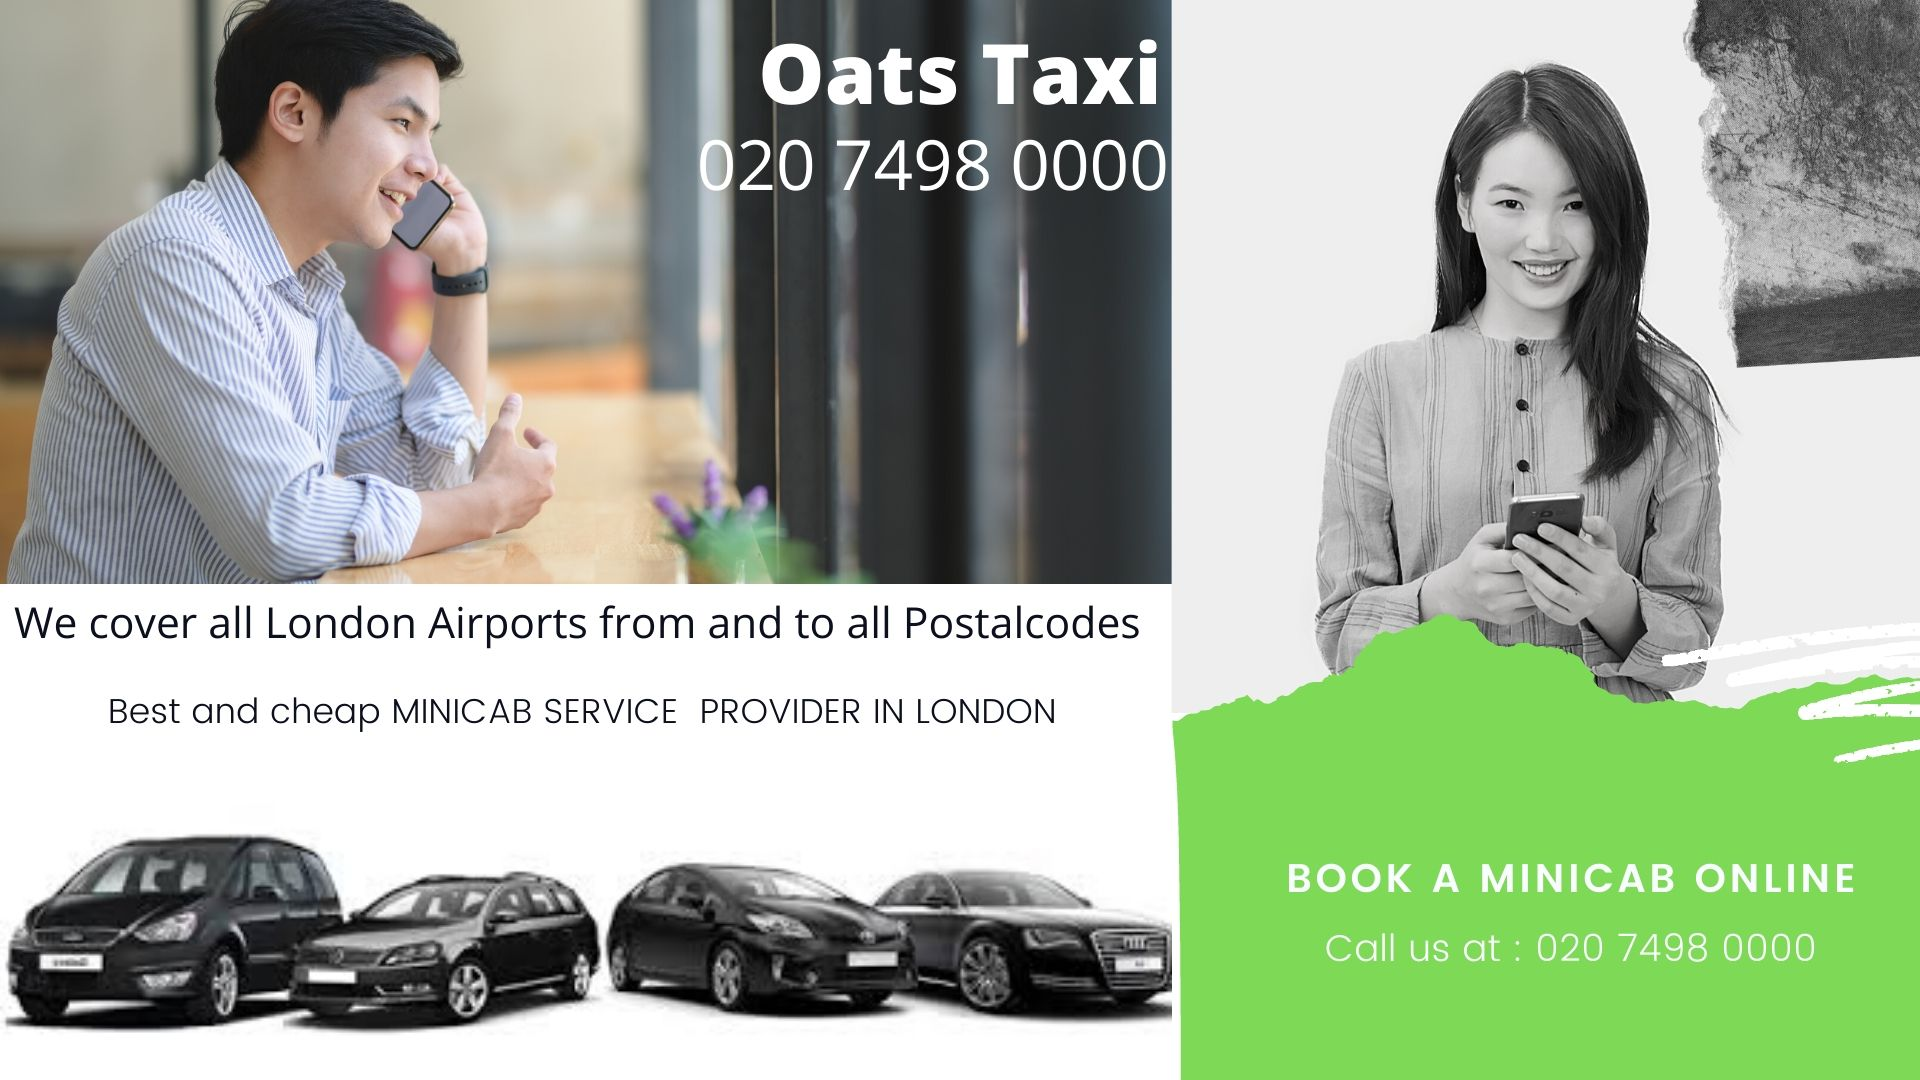 Nearest Taxi Office in Clapham | Nearest Taxi Office in Gatwick Airport | Call now : 02074980000